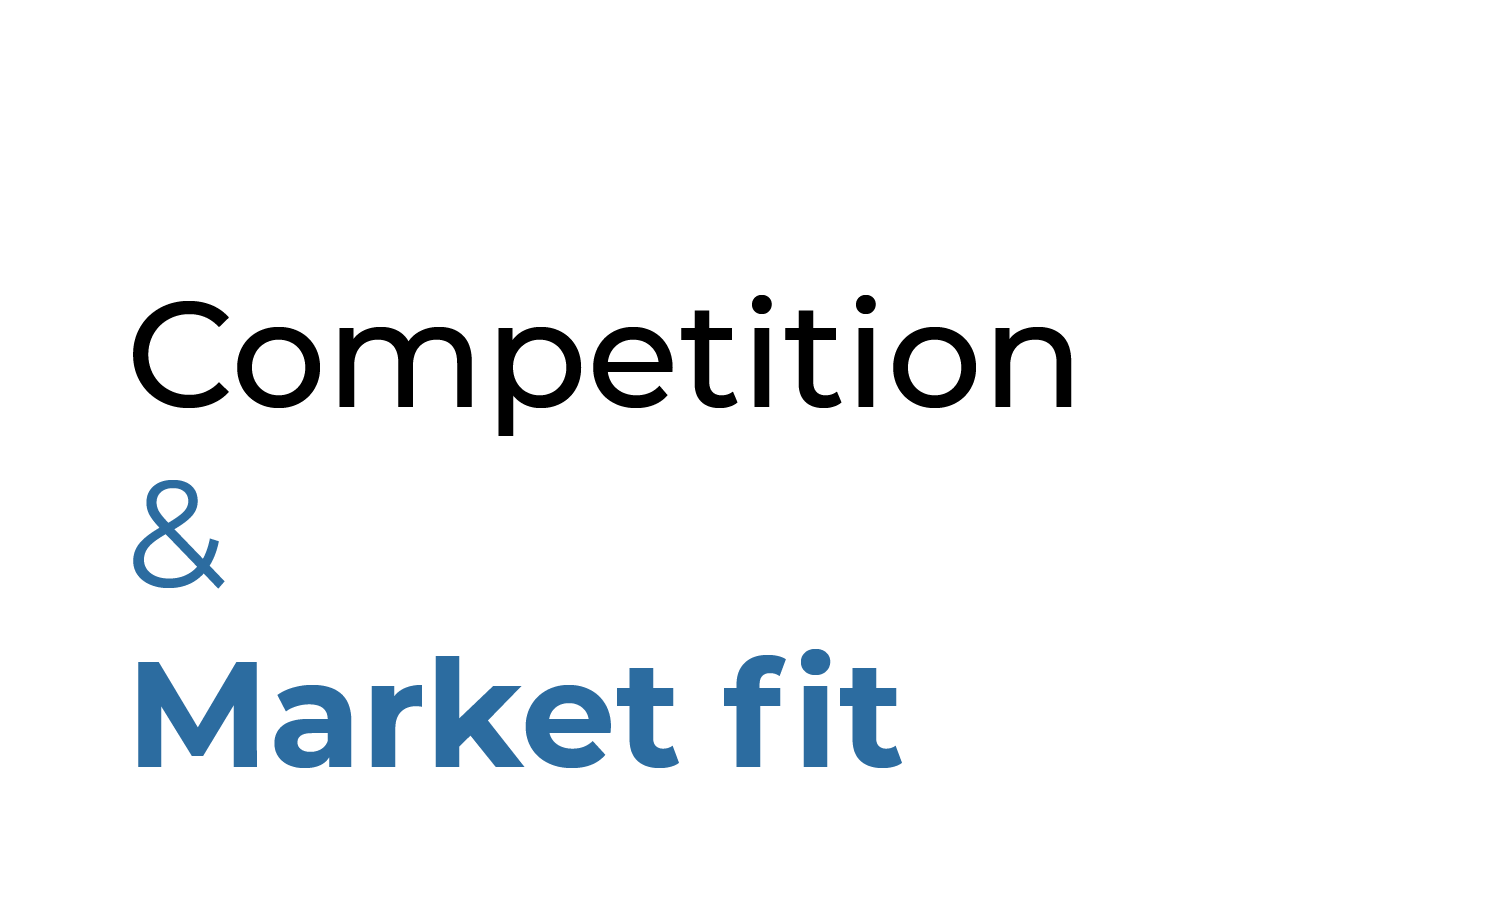 Competition & Market fit